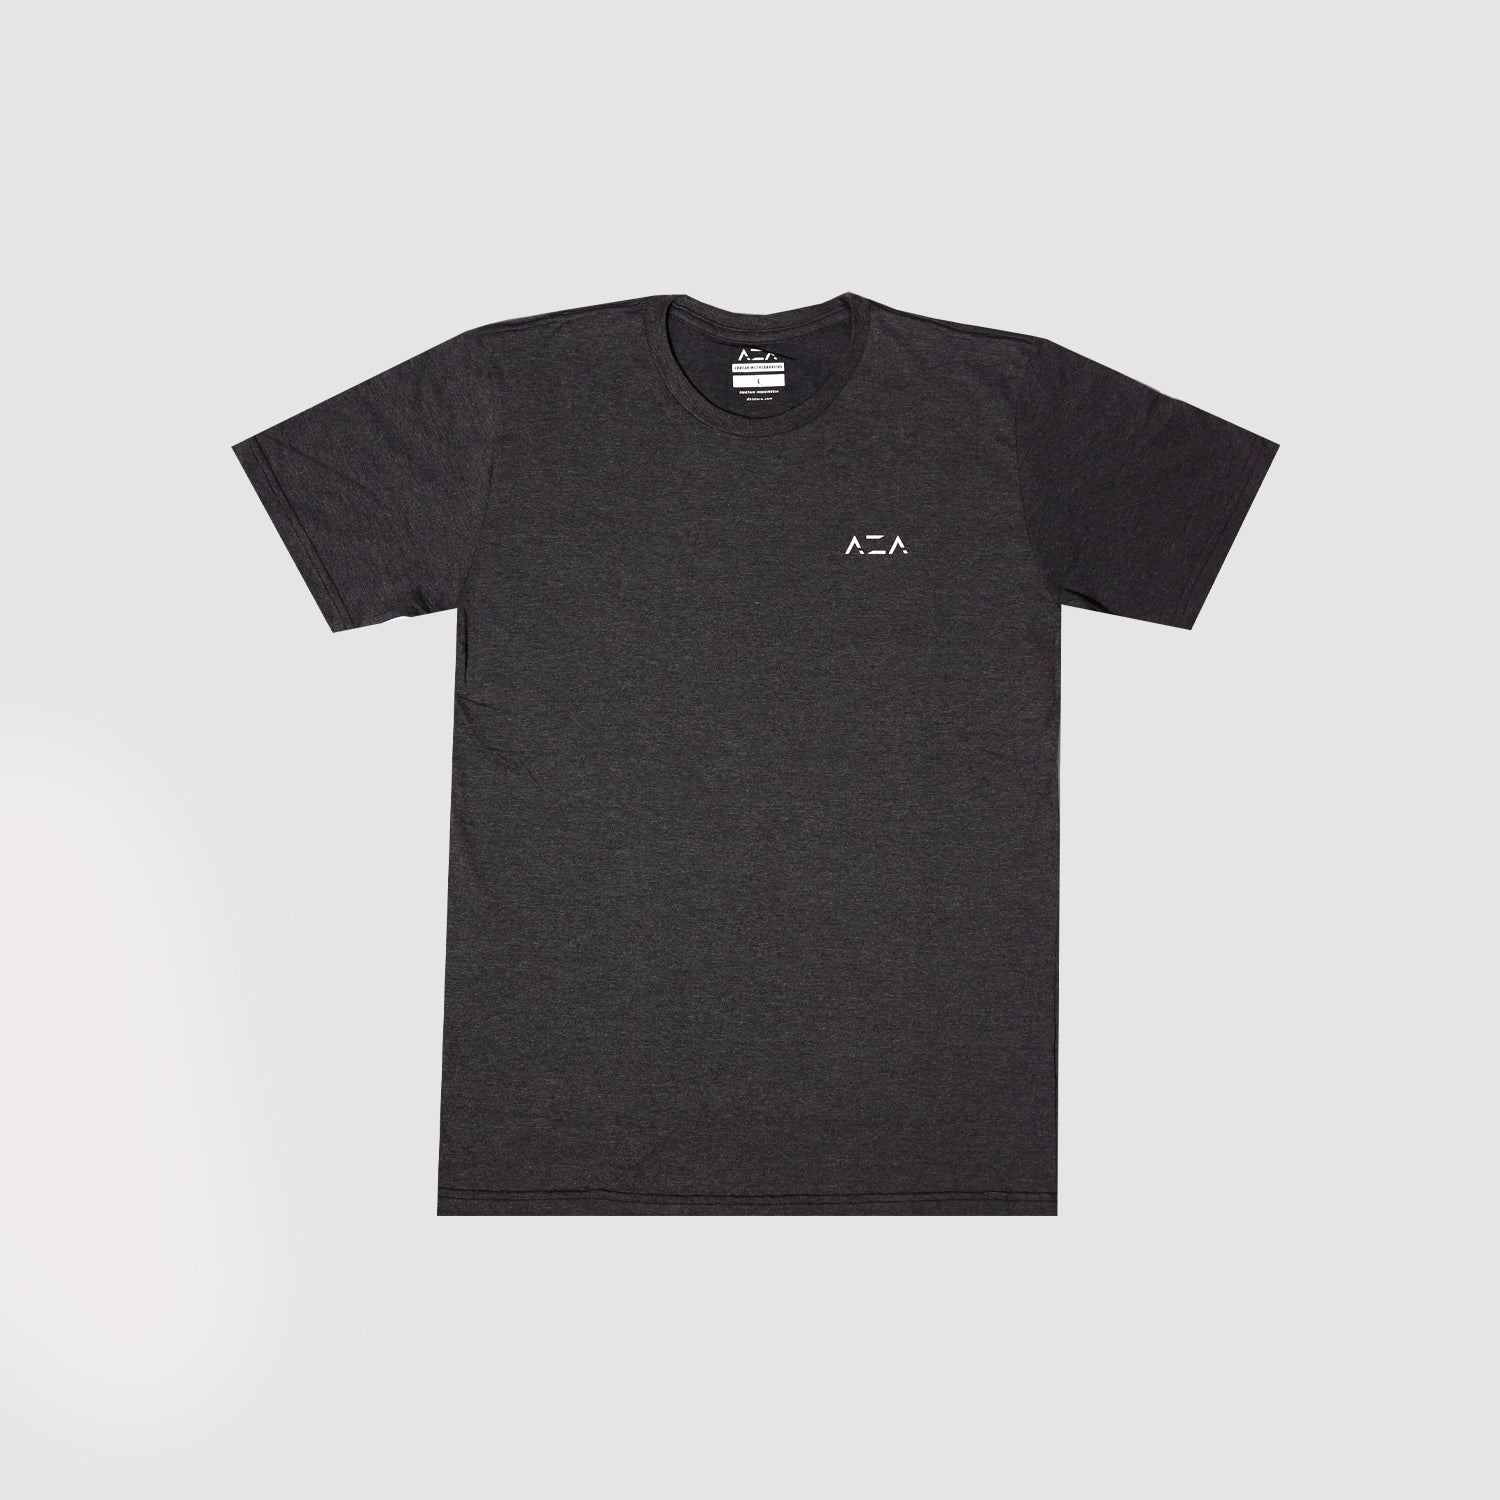 AZA Basic T-Shirt - Black